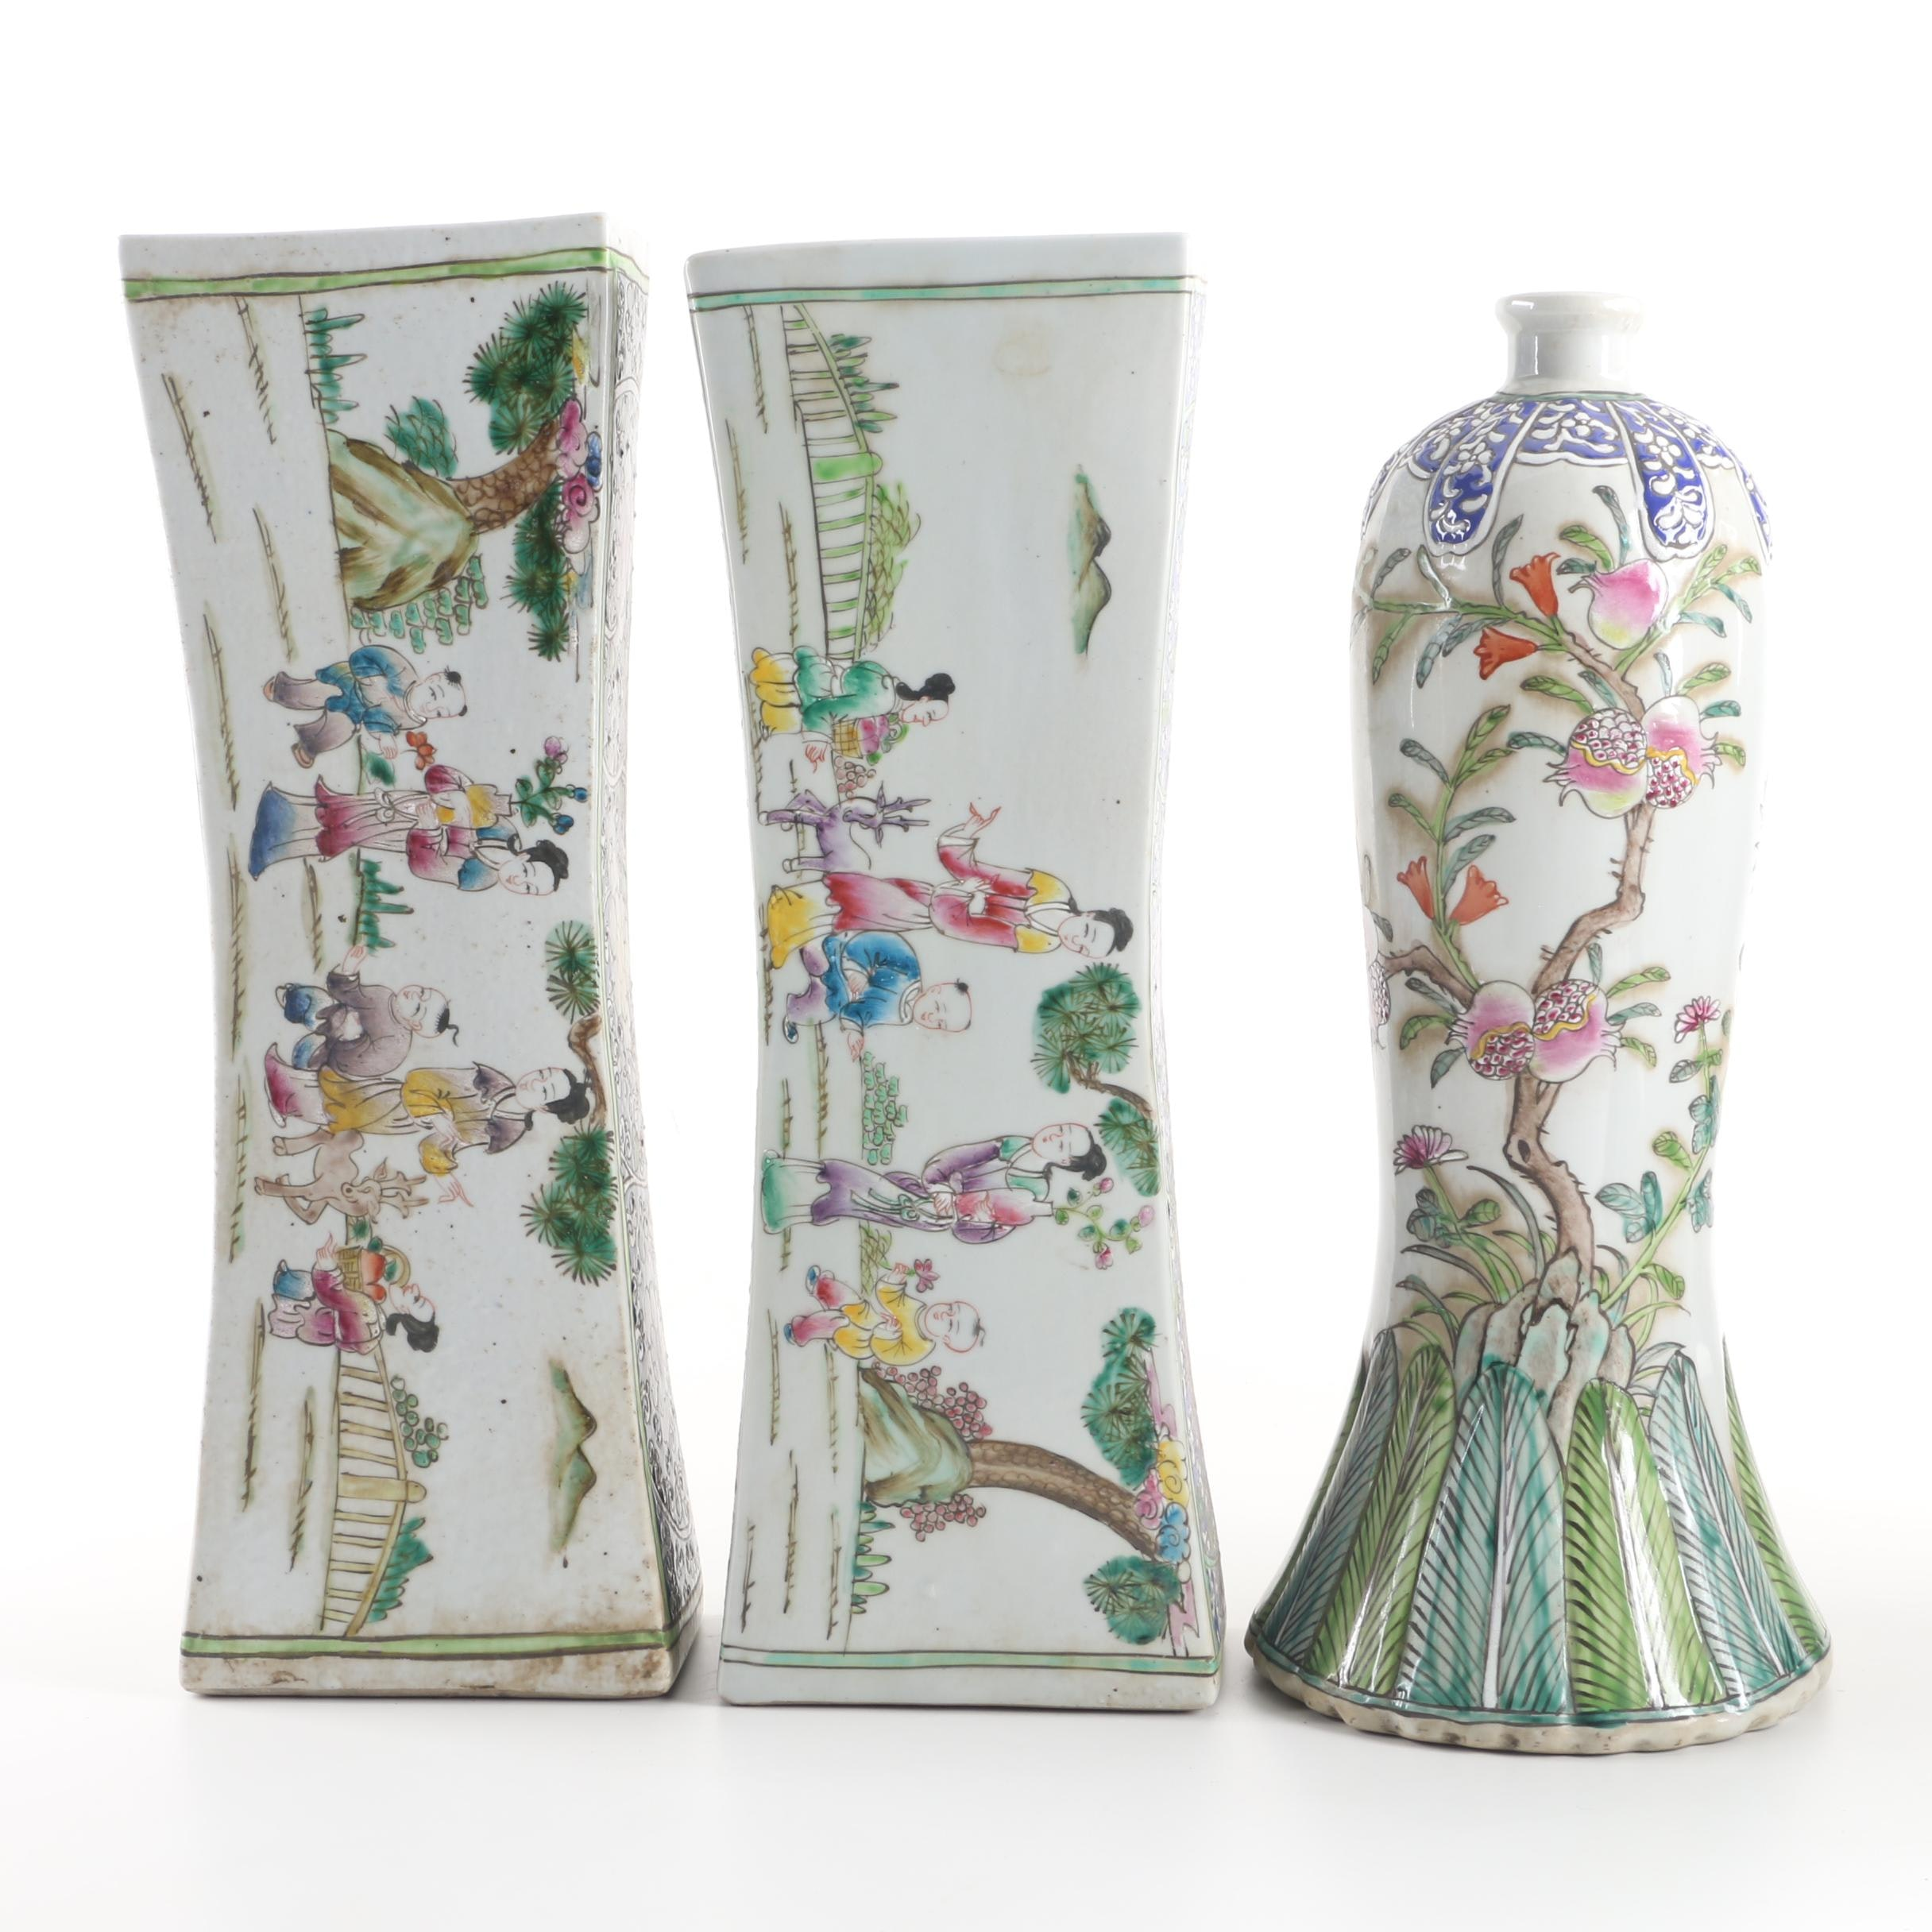 Chinese Ceramic Pillows and Floral and Foliate Themed Vase